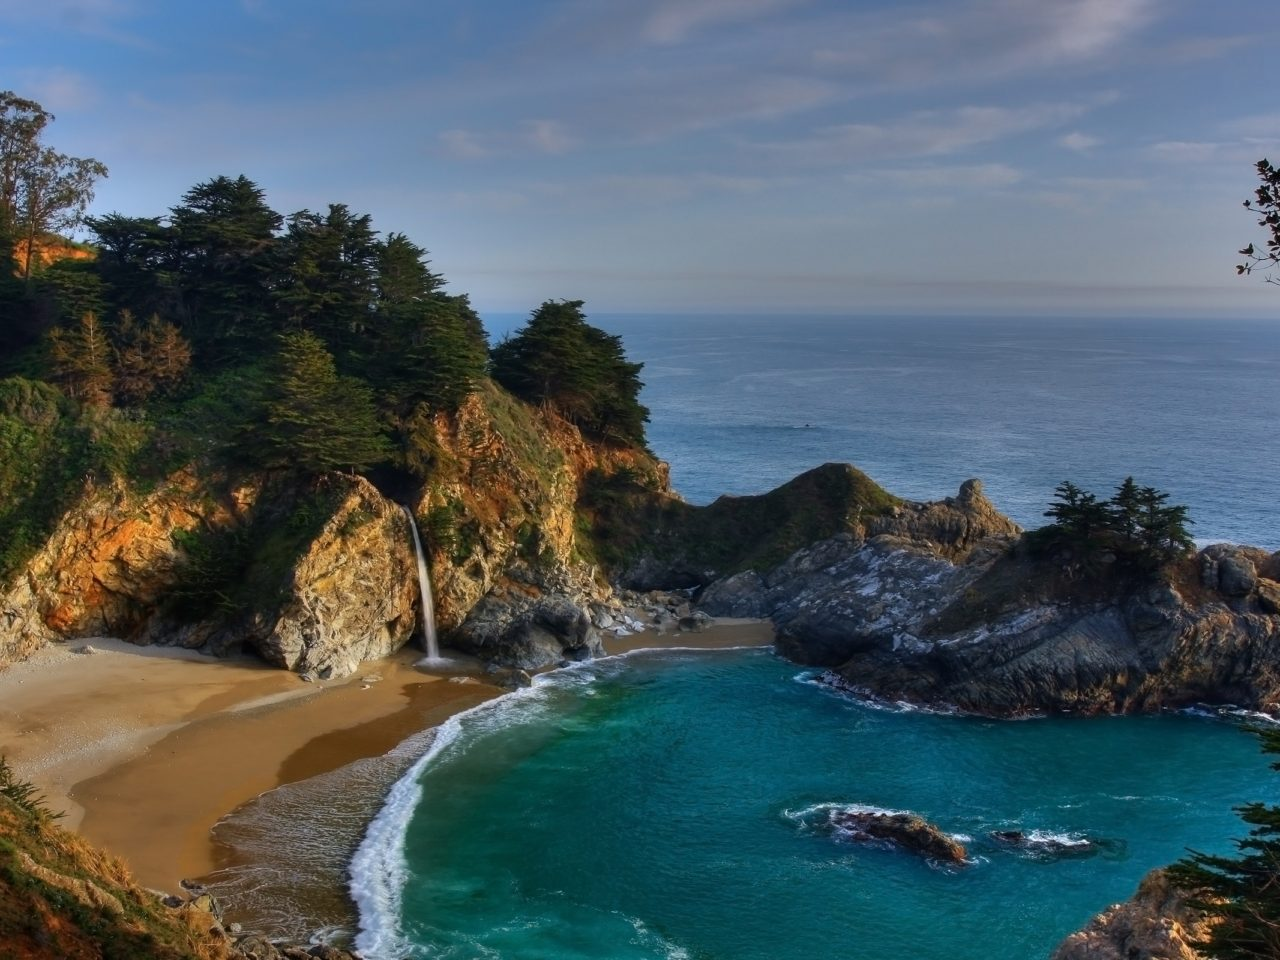 Summer Desktop Wallpaper Hd Sea Coast National Park Big Sur 0965 Wallpapers13 Com